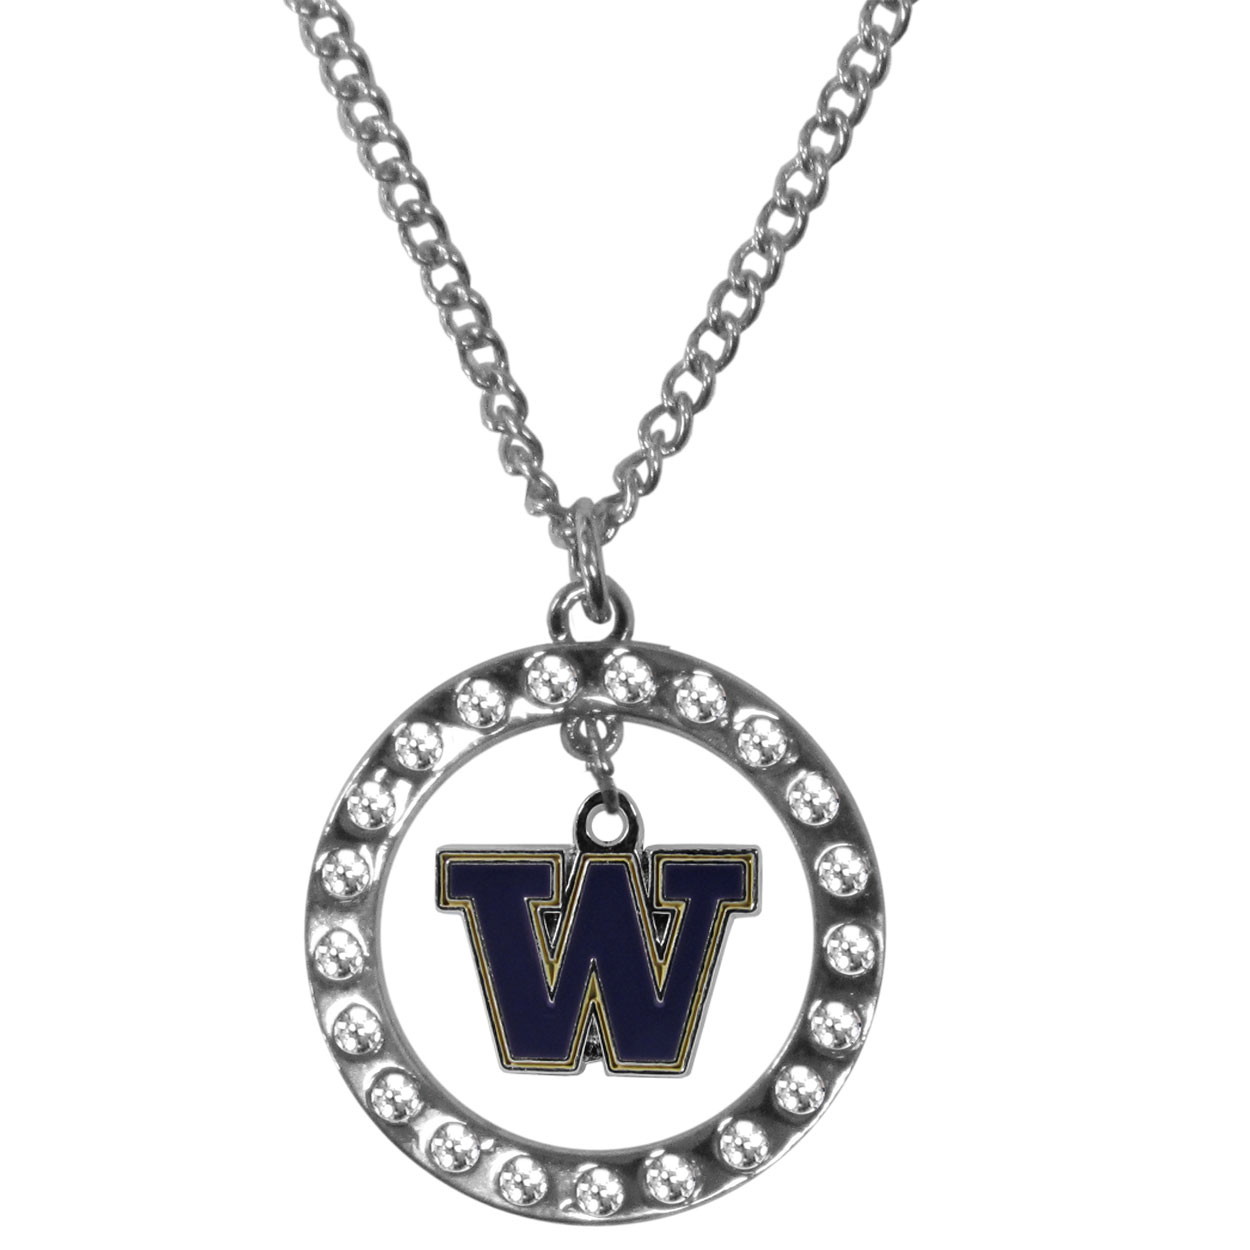 Washington Huskies Rhinestone Hoop Necklaces - Our Washington Huskies rhinestone hoop necklace comes on an 18 inch chain and features a hoop covered in rhinestones with a high polish chrome finish and a cast and enameled team charm dangling in the center.